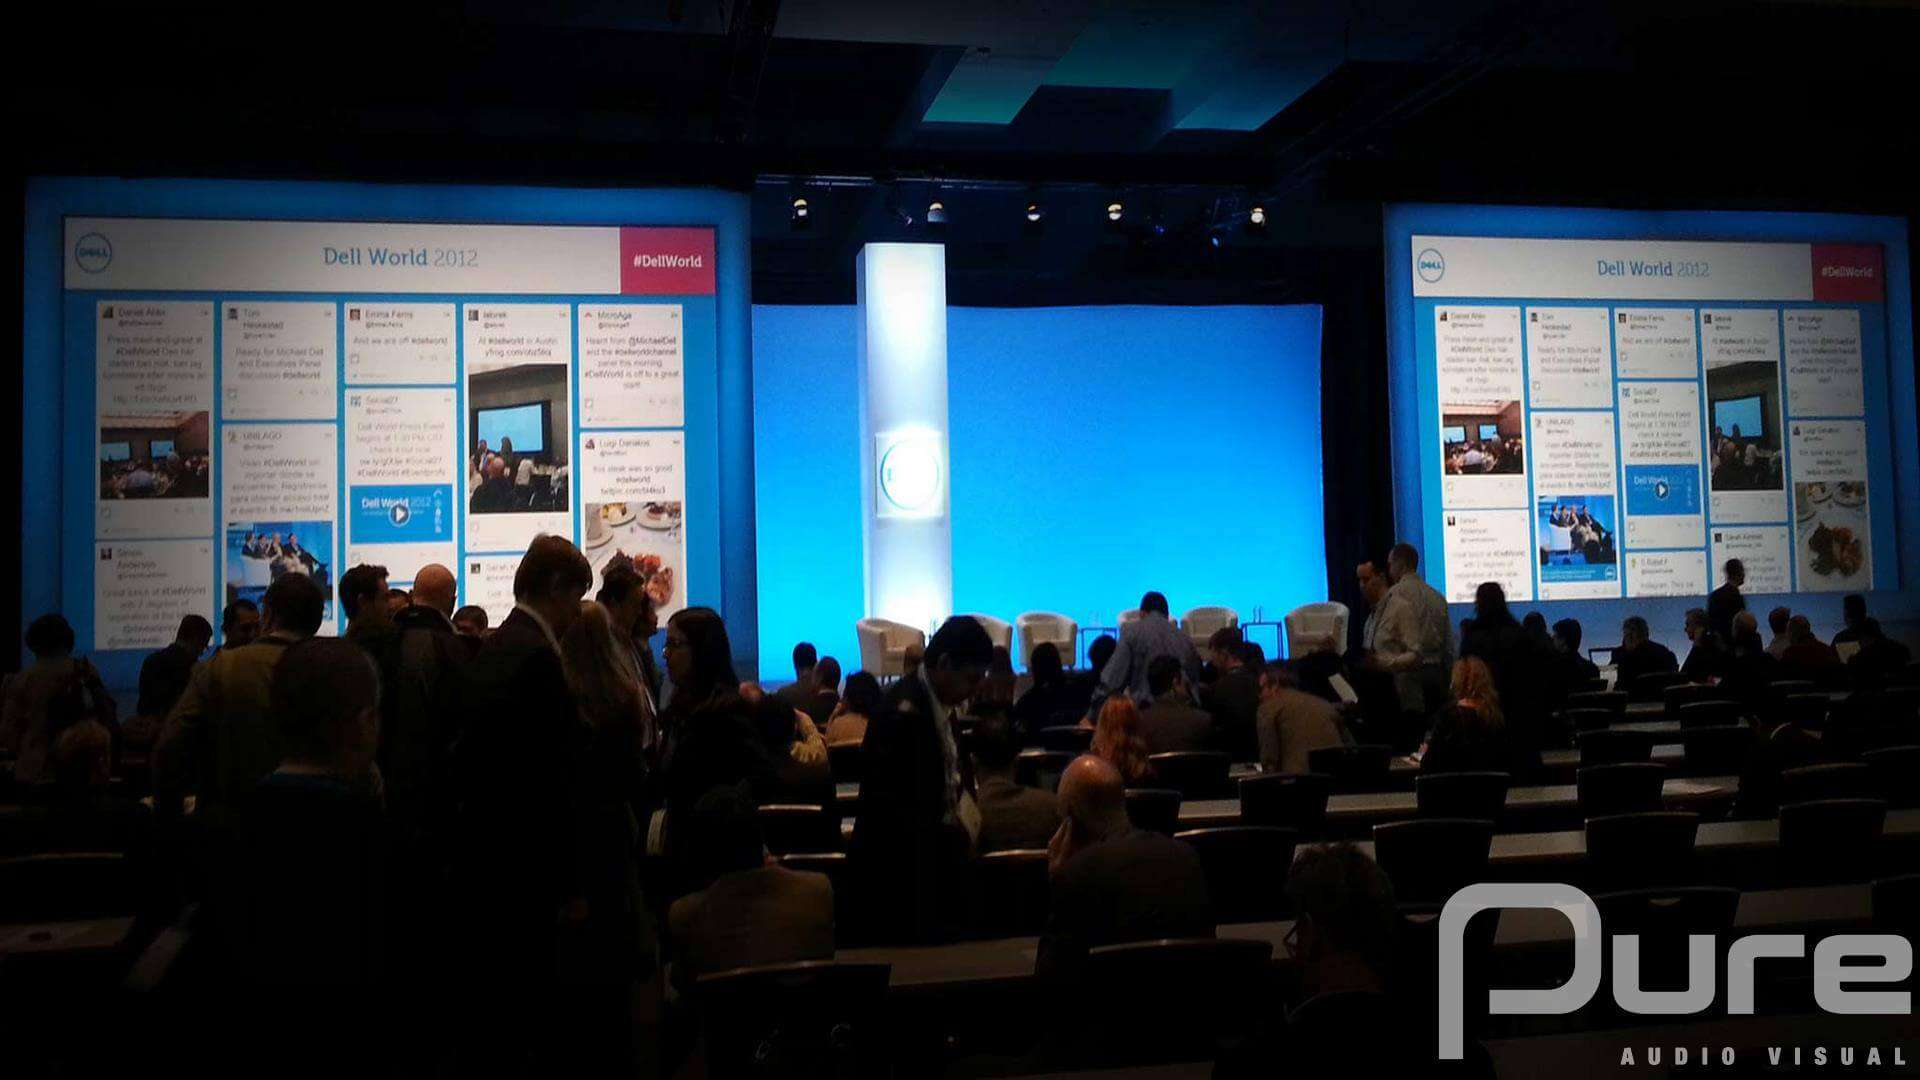 Conference audio visual lighting company